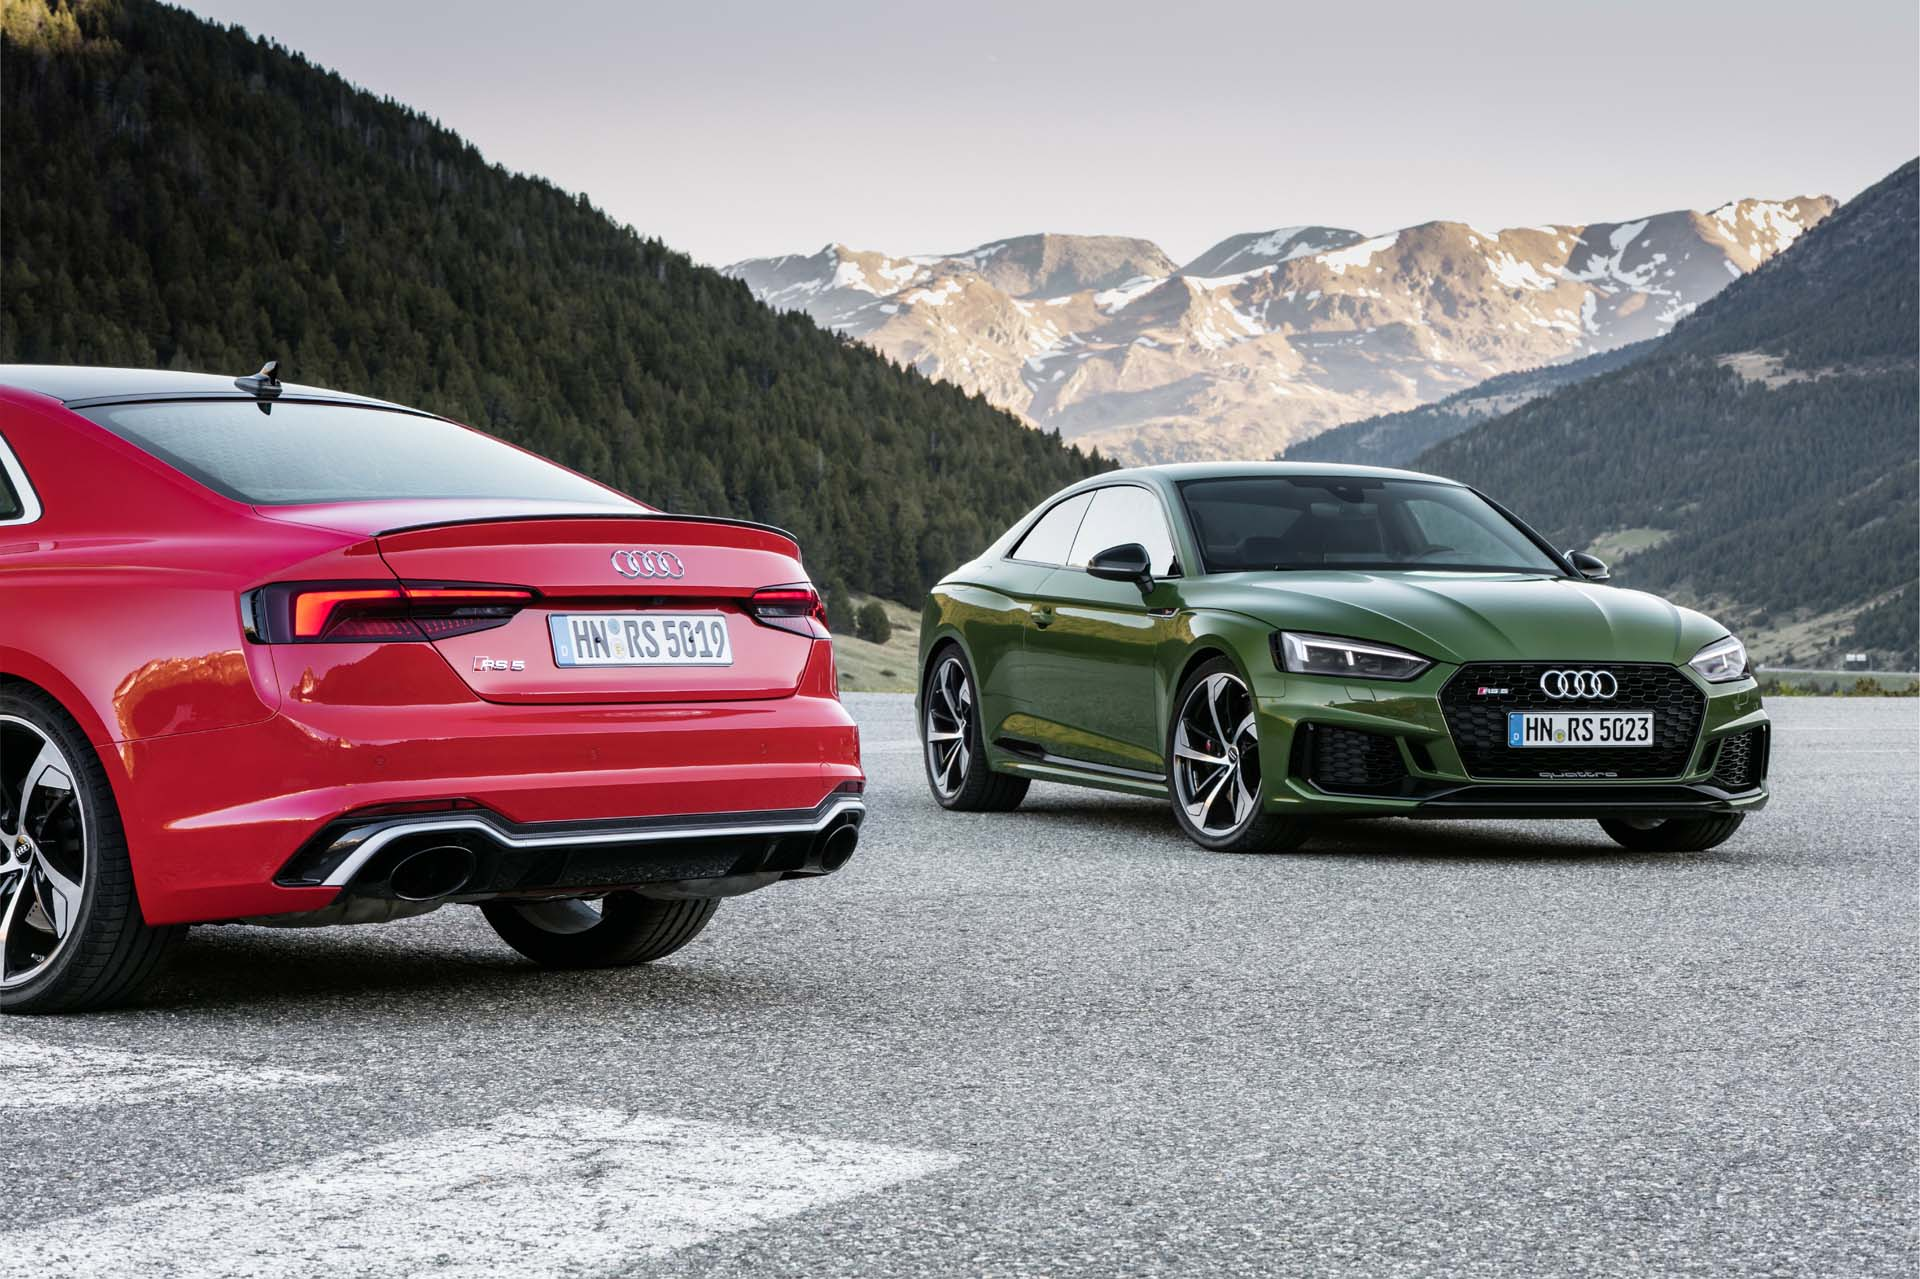 Audi hints it may offer rearwheel drive on RS models